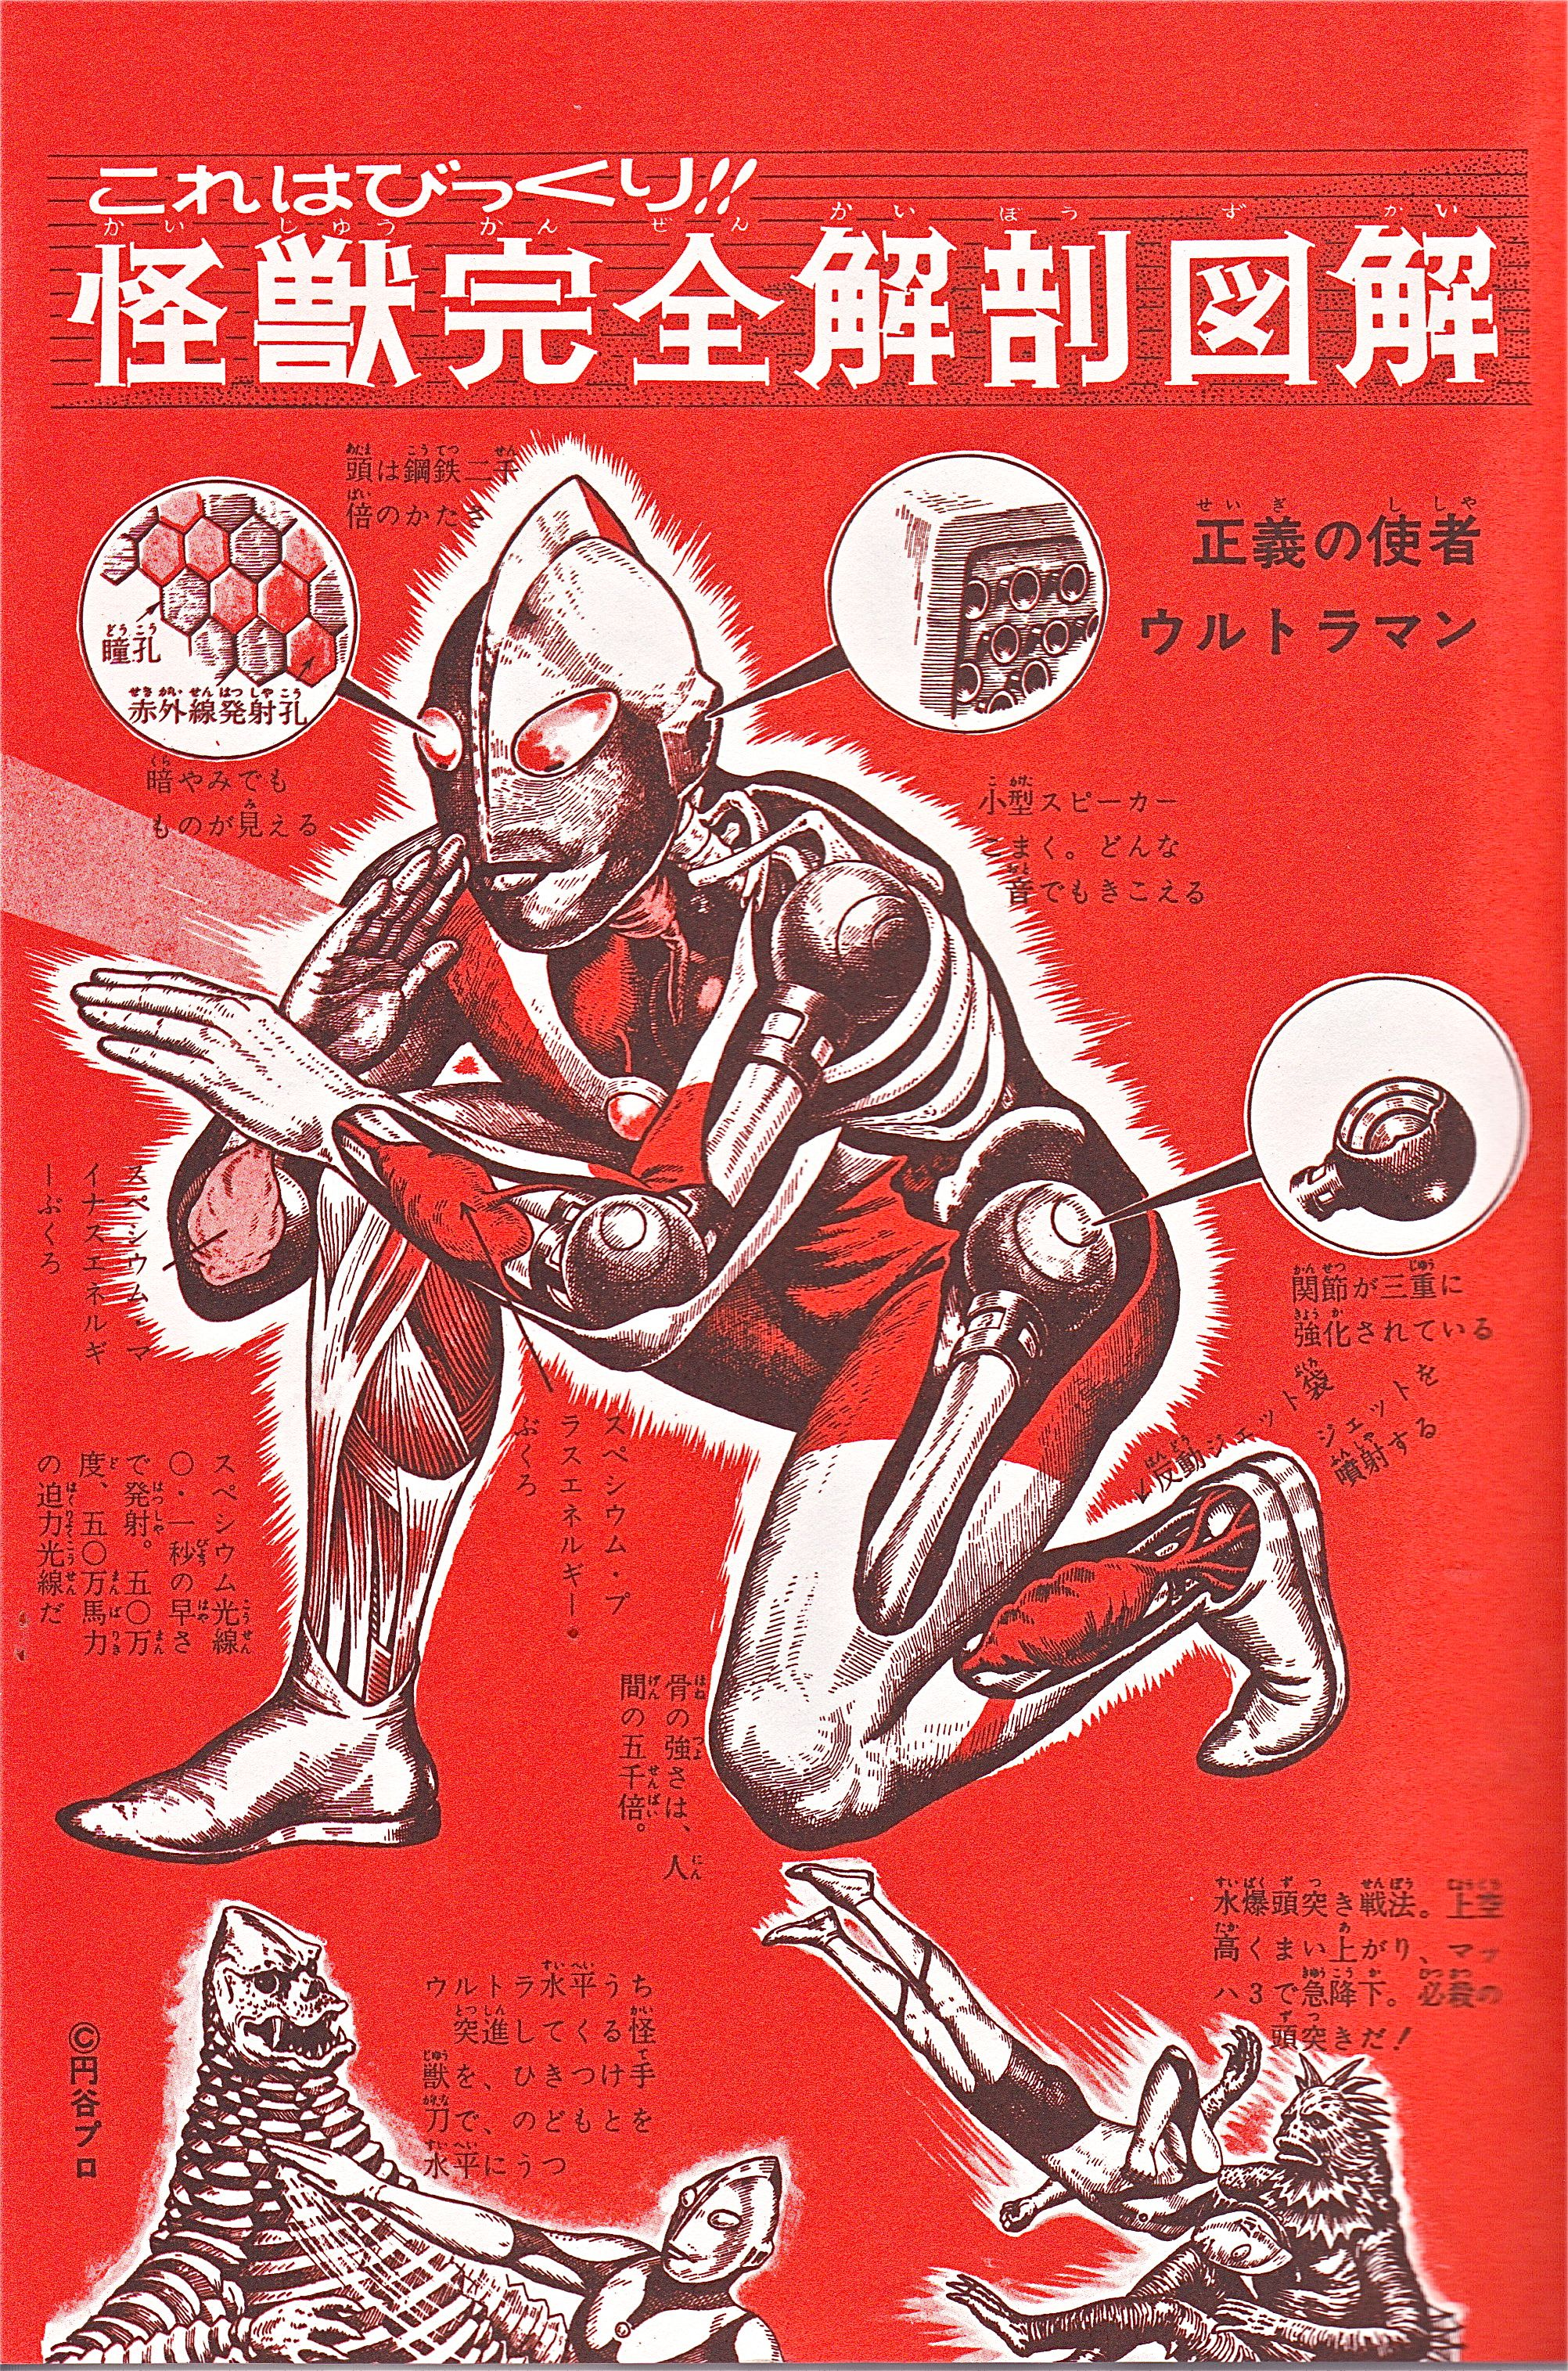 Inside ULTRAMAN, no wonder he\'s so strong! | Godzilla | Pinterest ...